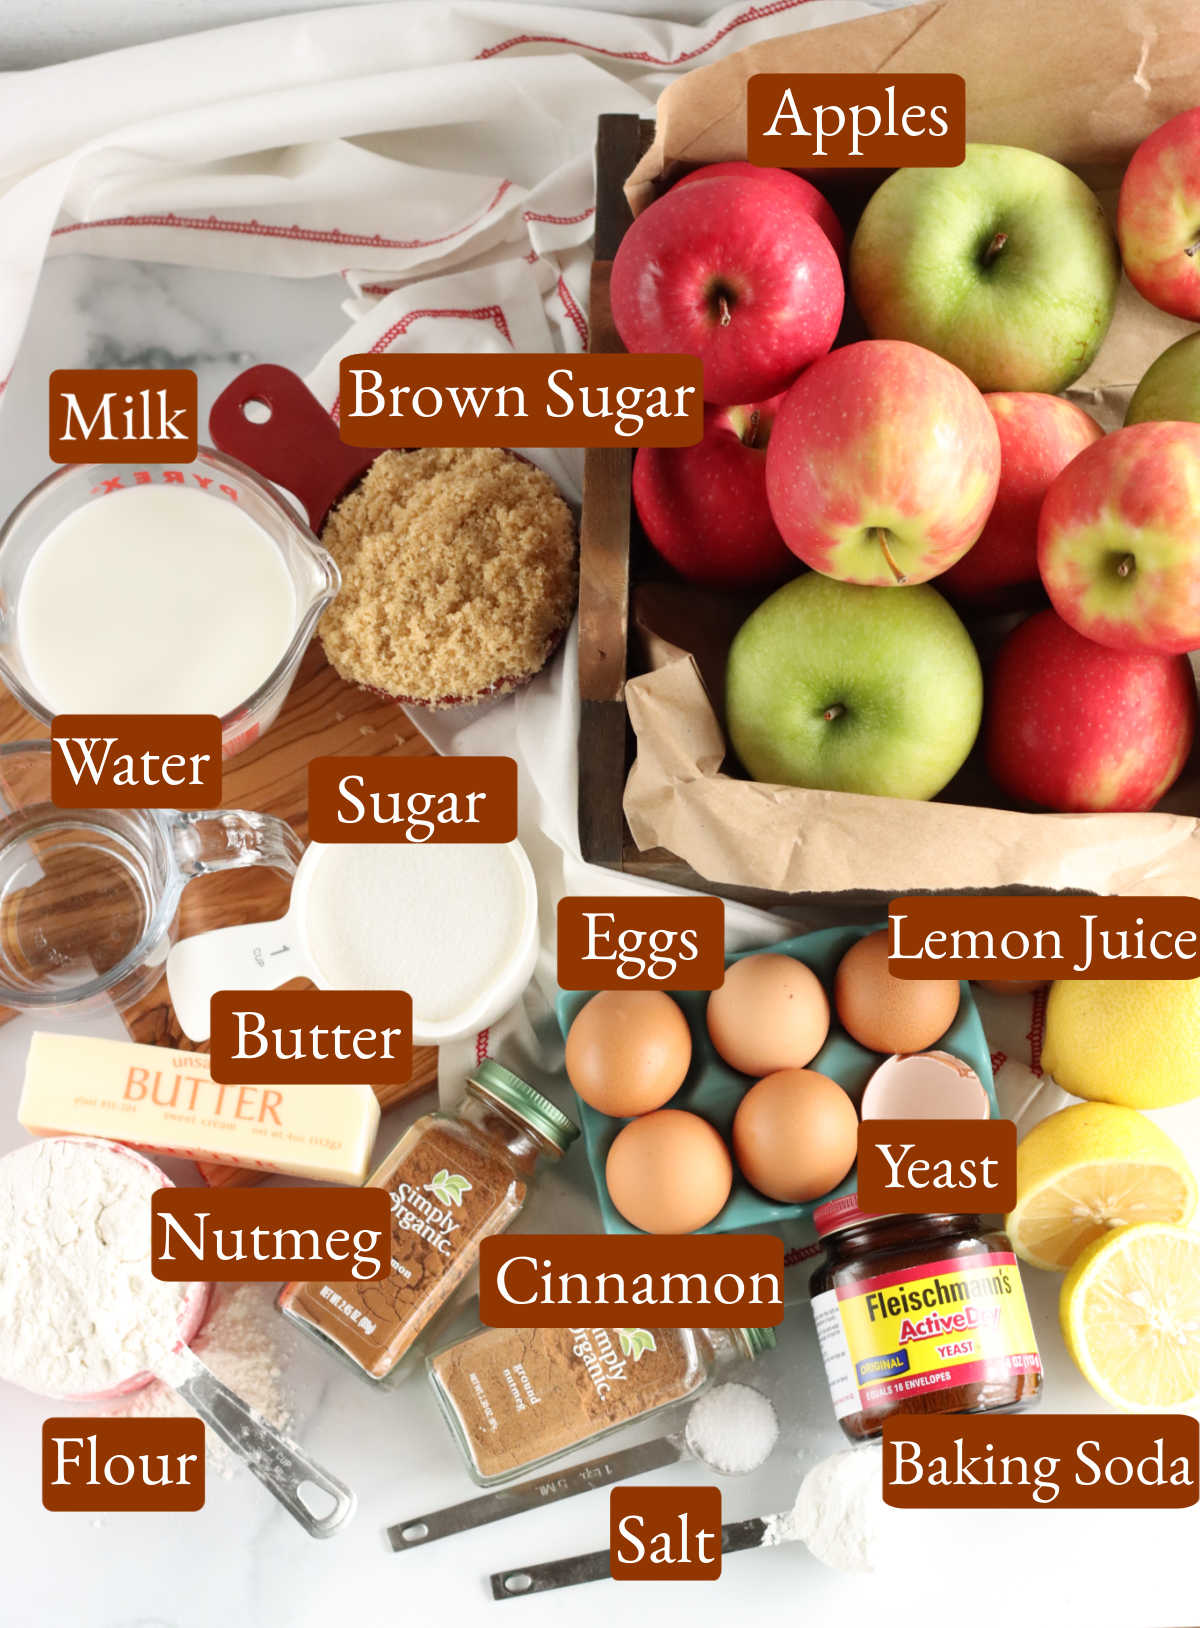 Overhead image of ingredients for apple fritters on wooden cutting board.